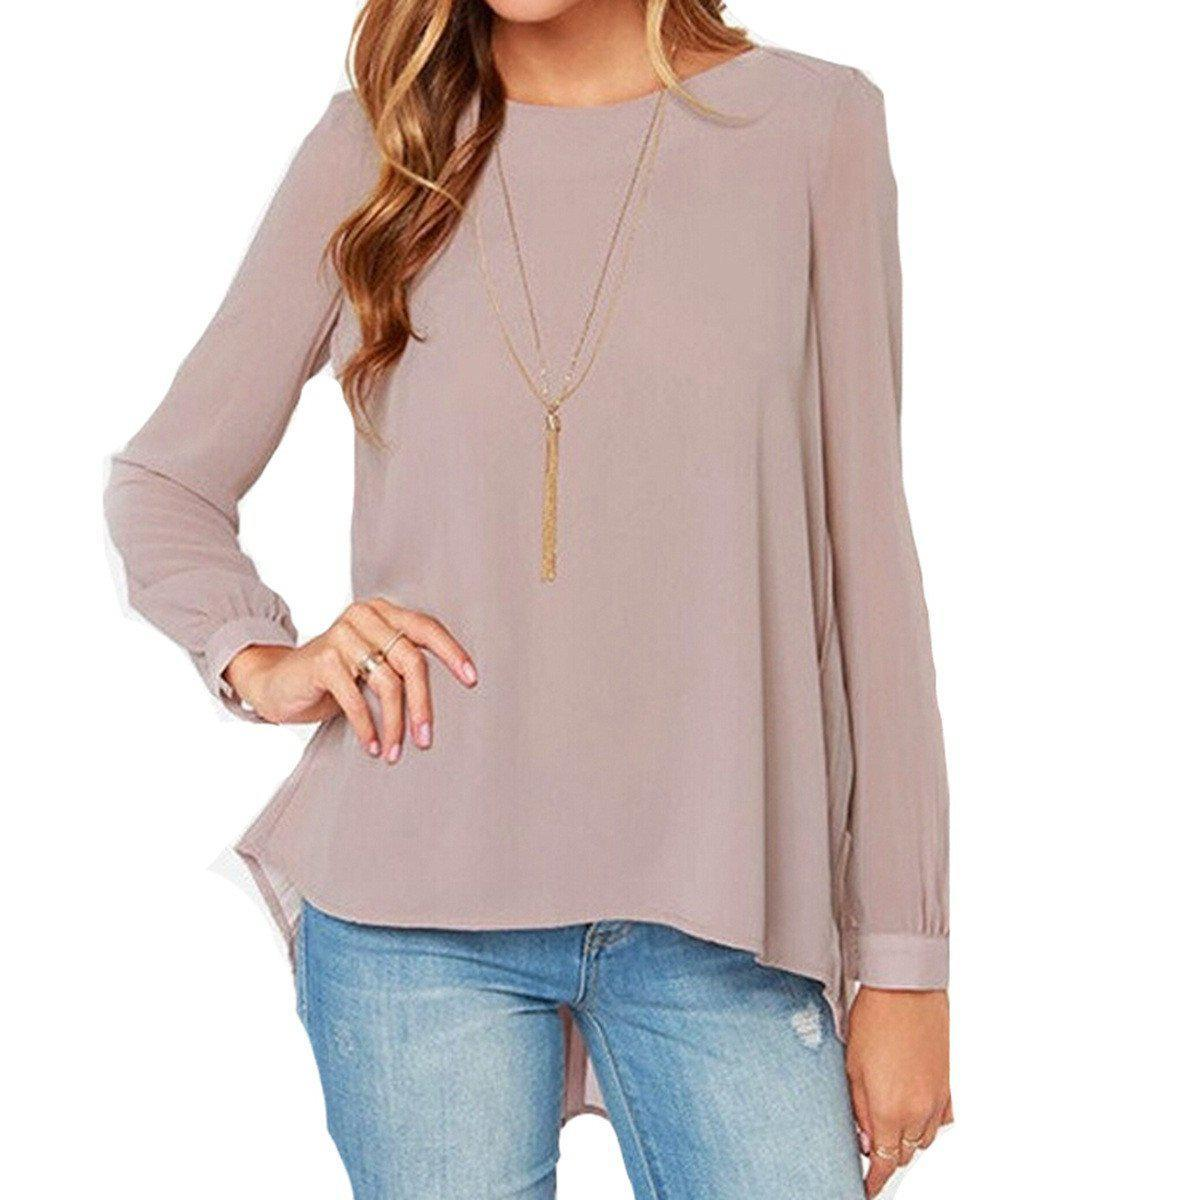 Summer Style Hot Sale Women Sexy Casual Loose Chiffon Tops Long Sleeve Solid Shirts Ladies Blouses Plus Size S-XL-Blouse-SheSimplyShops